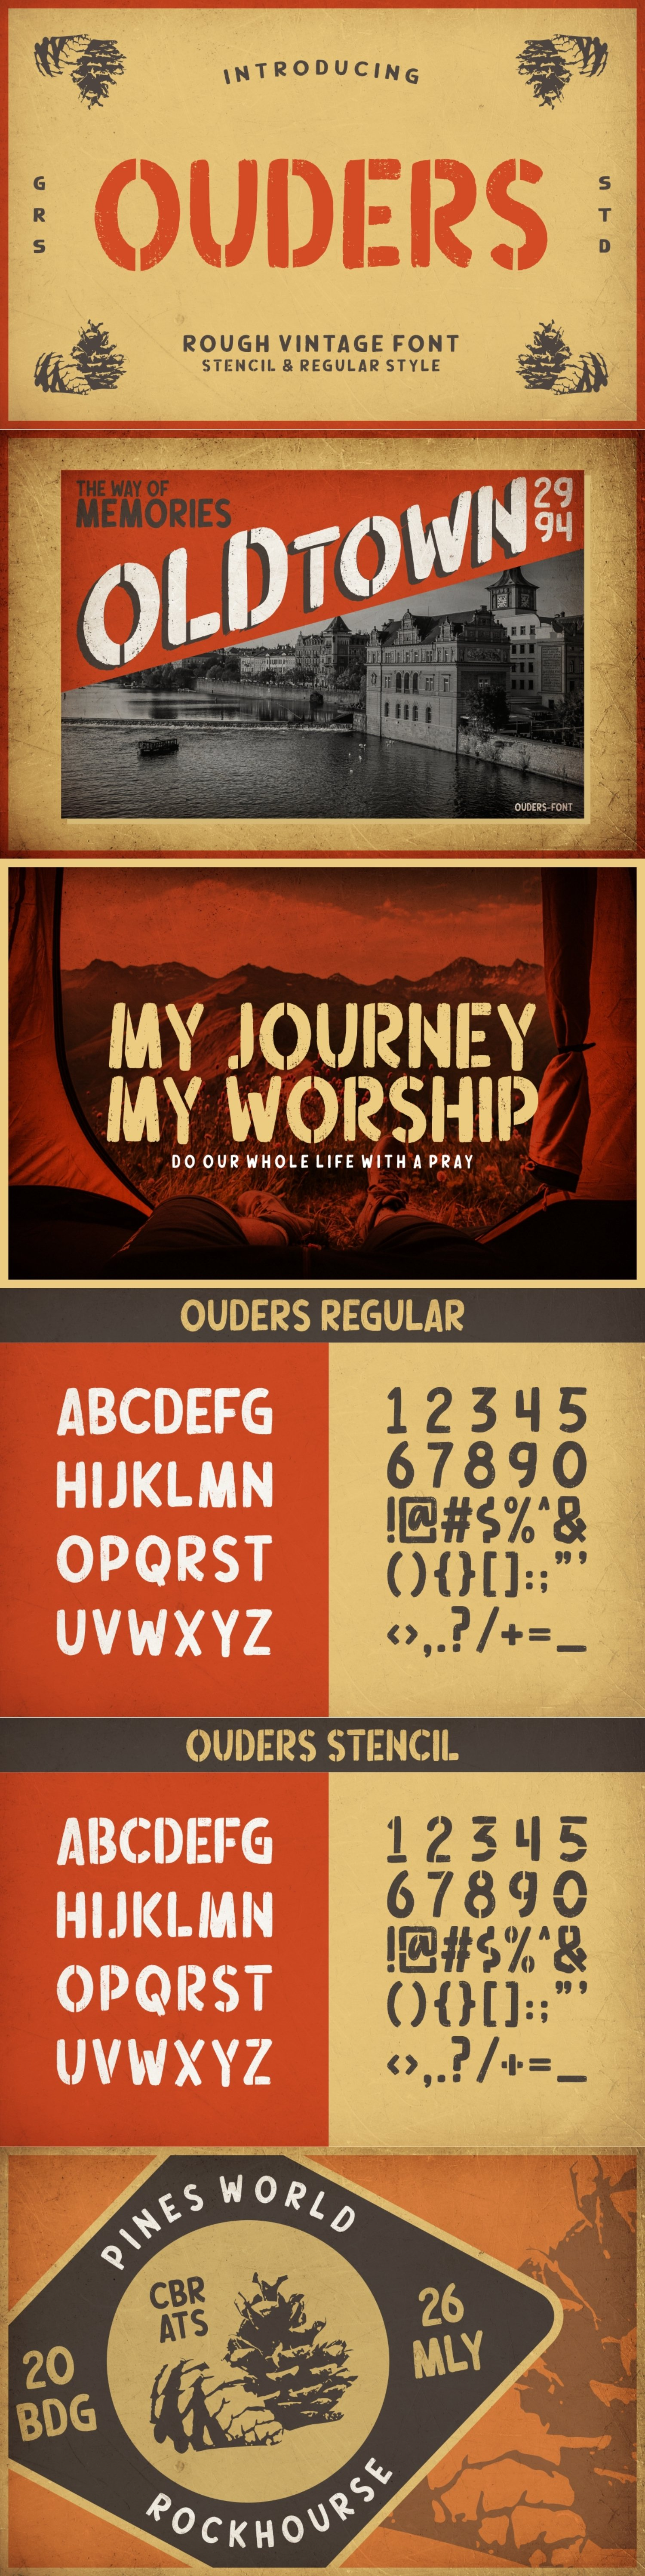 Ouders - Stencil & Regular Font example image 12